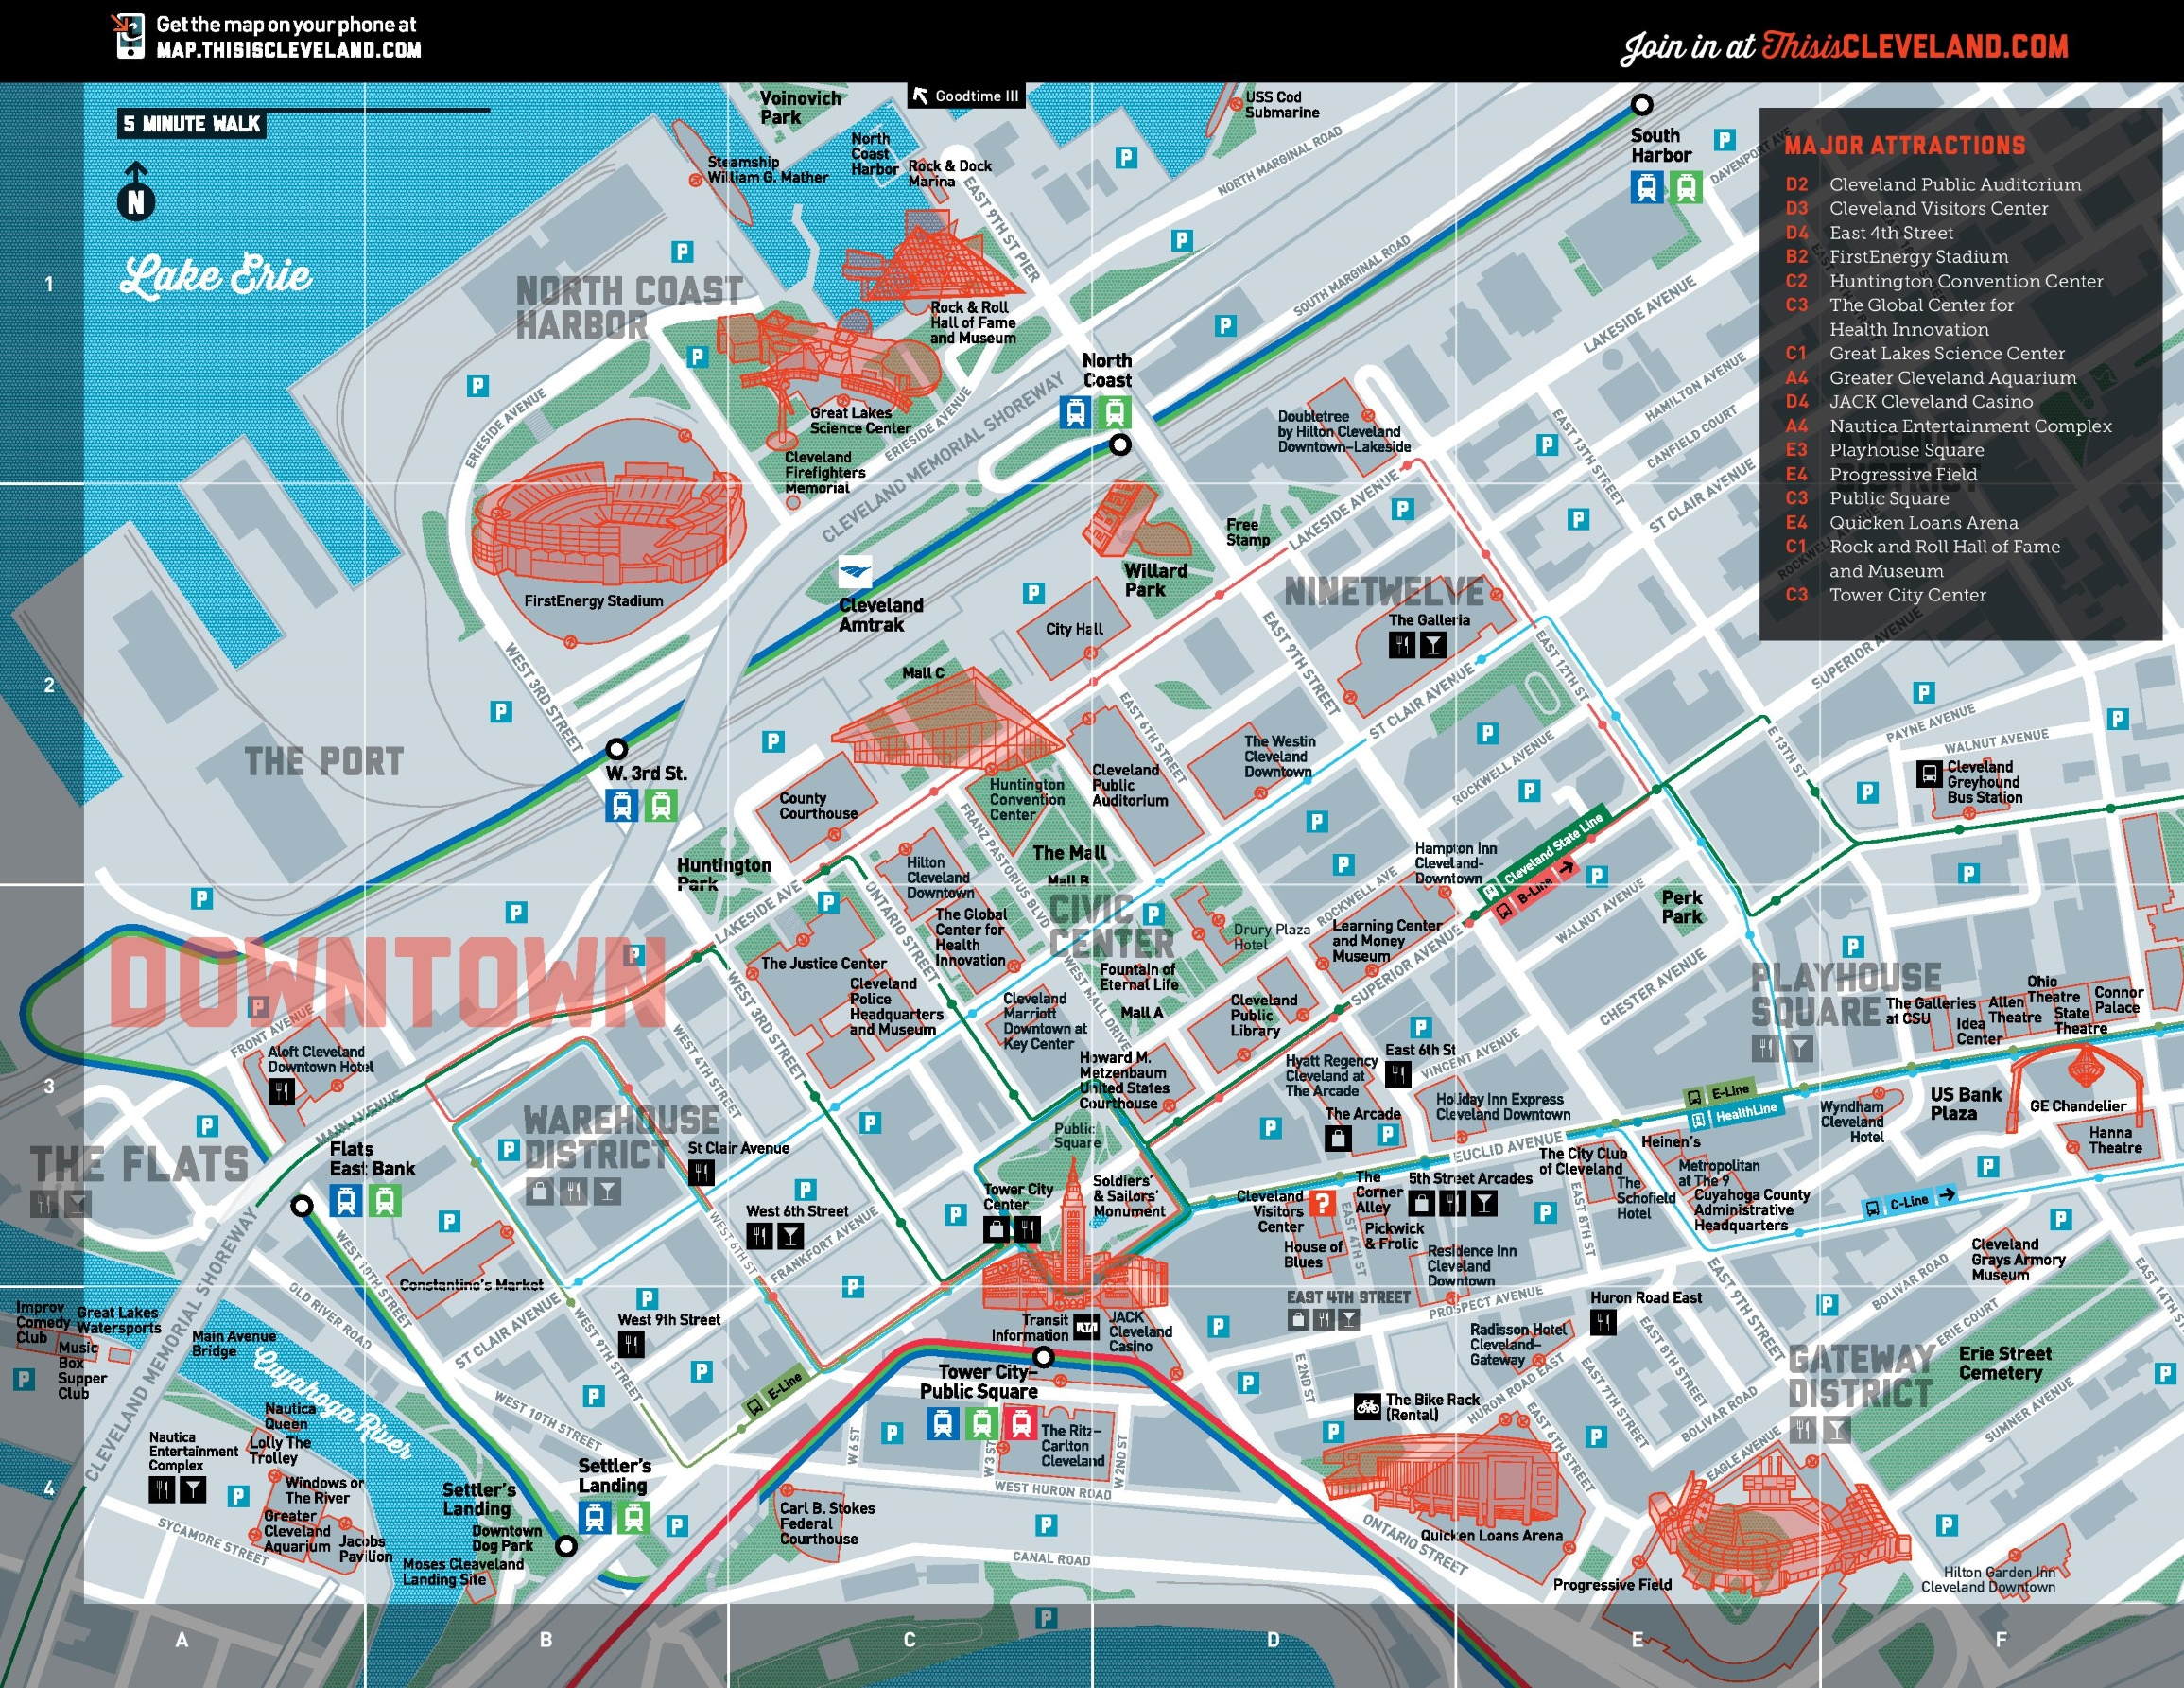 Cleveland tourist attractions map – Cleveland Tourist Attractions Map